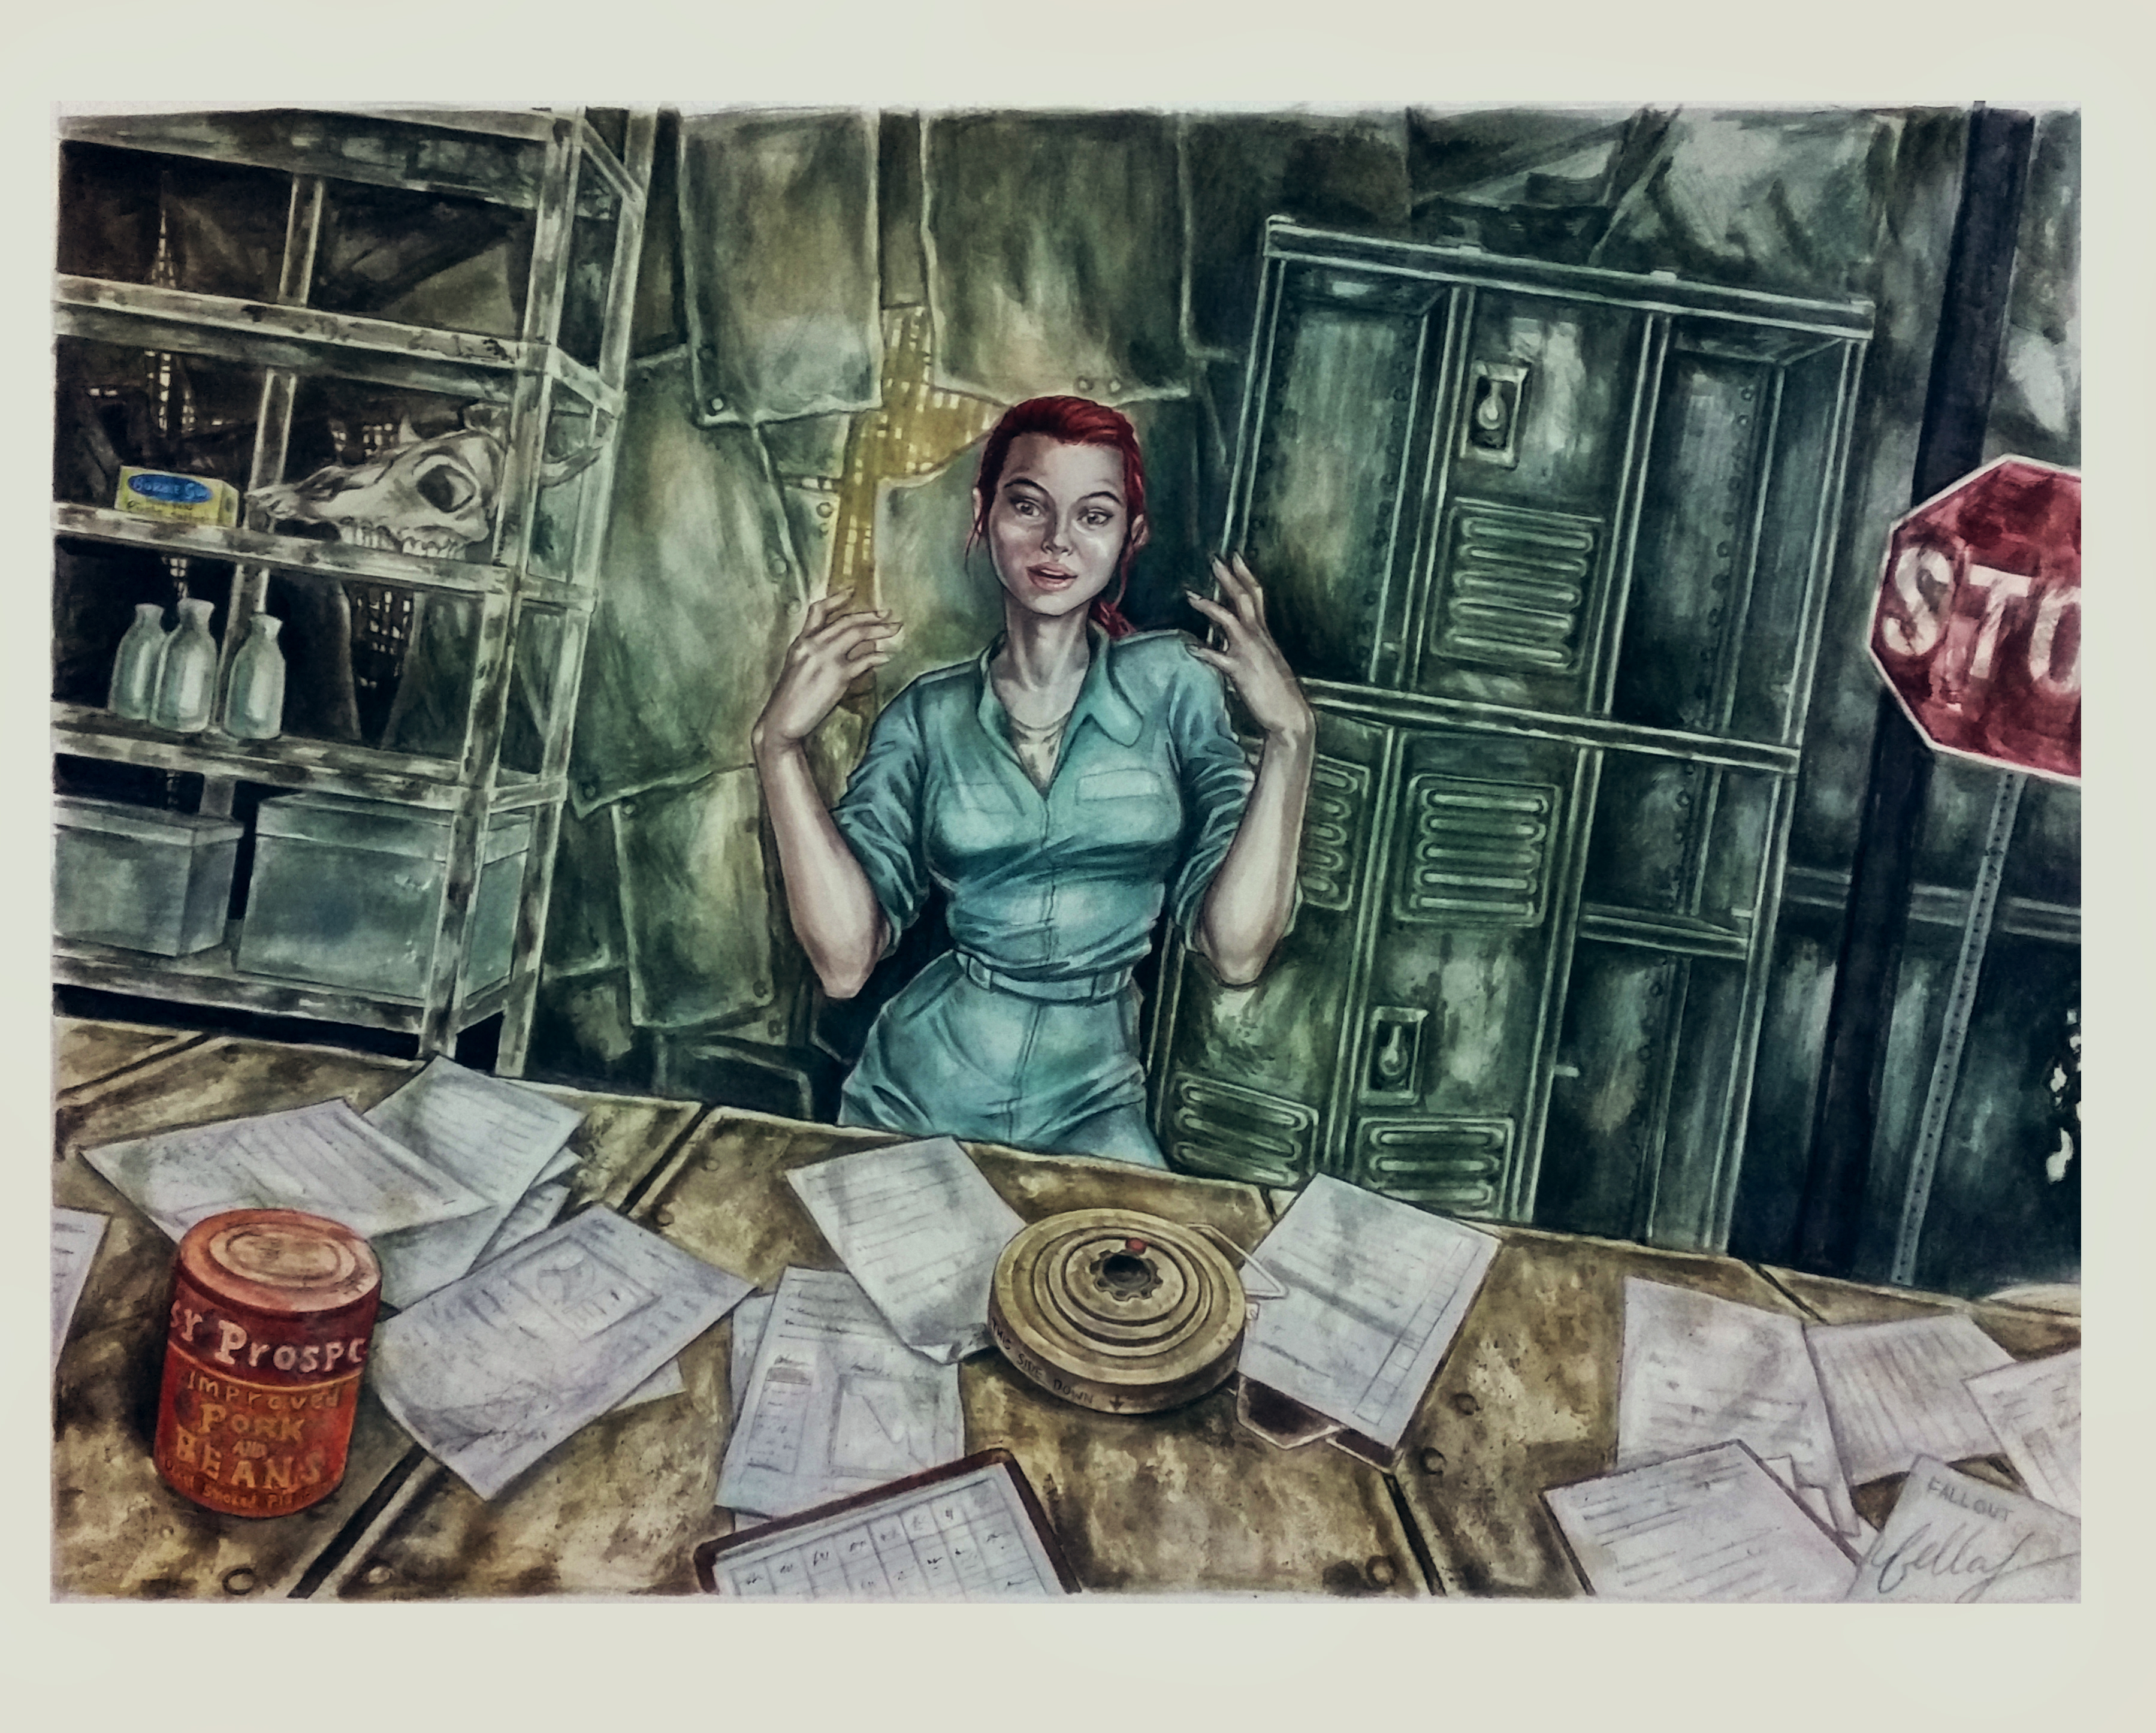 Moira Brown from Fallout